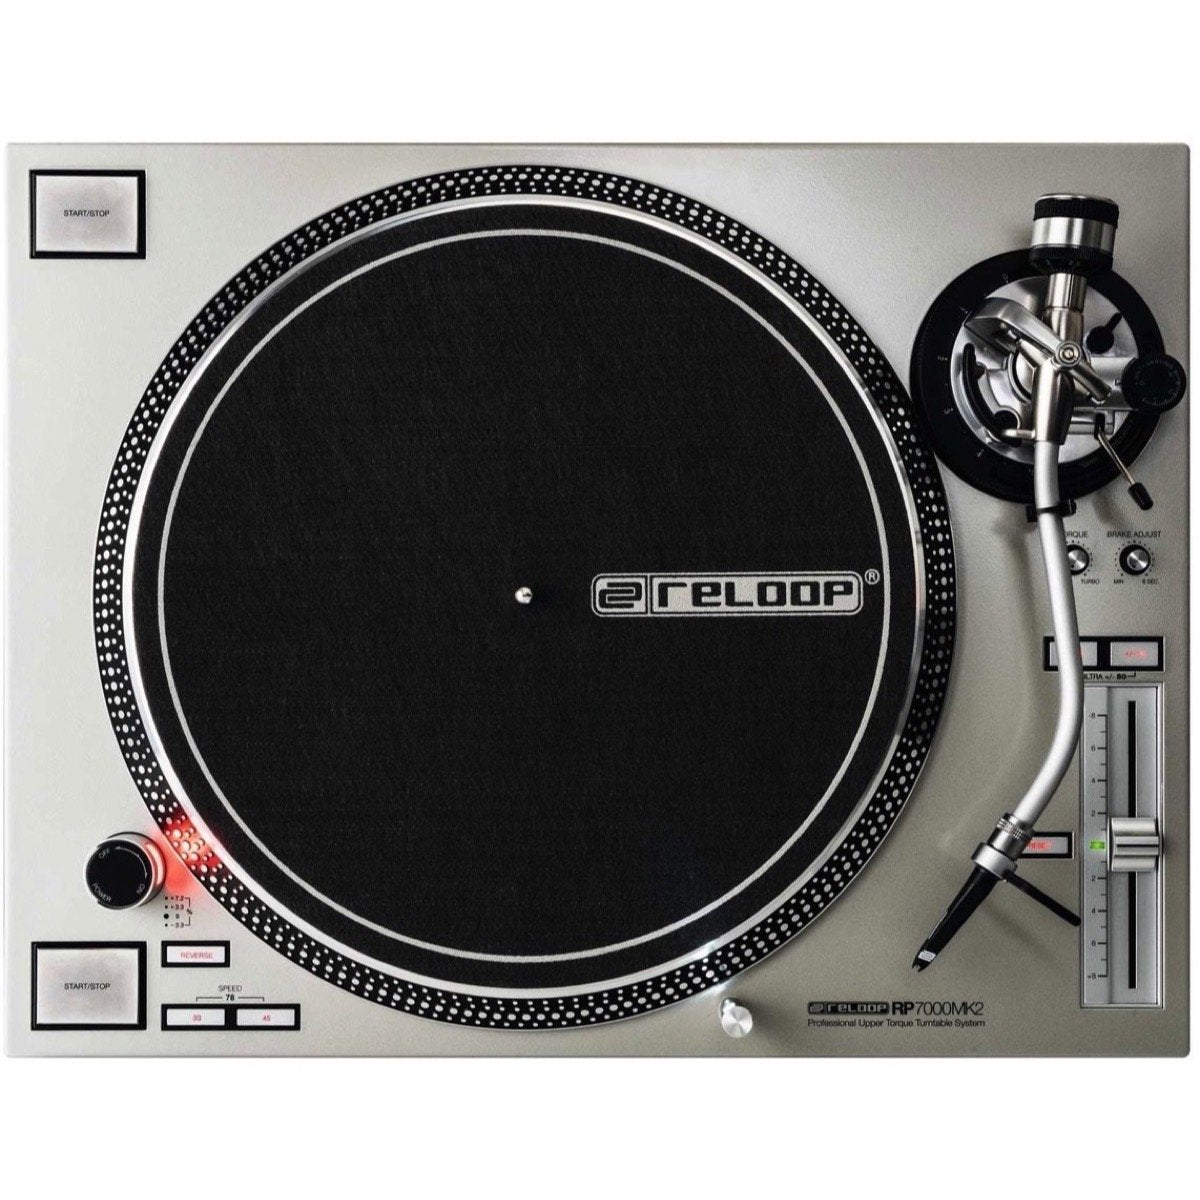 Reloop RP-7000 MK2 Direct-Drive Turntable, Silver